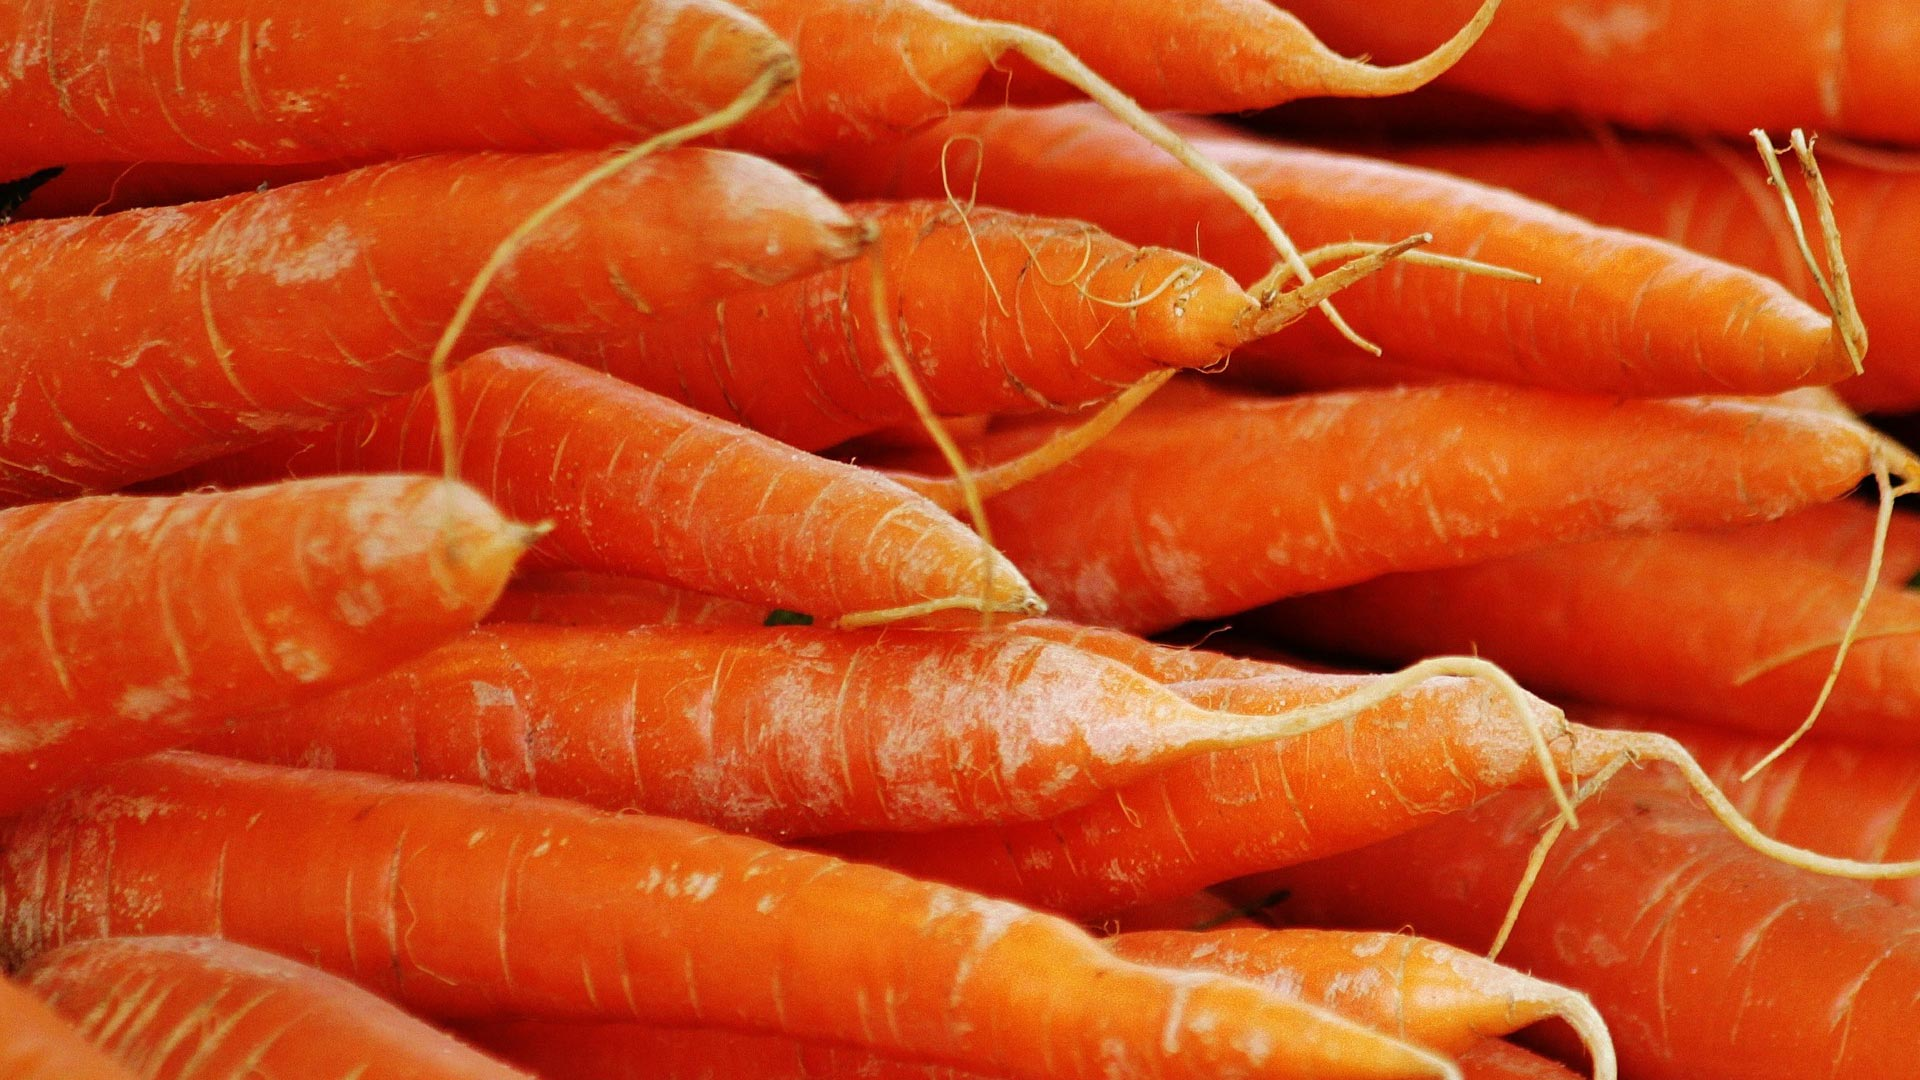 Fresh carrots ready to be washed.